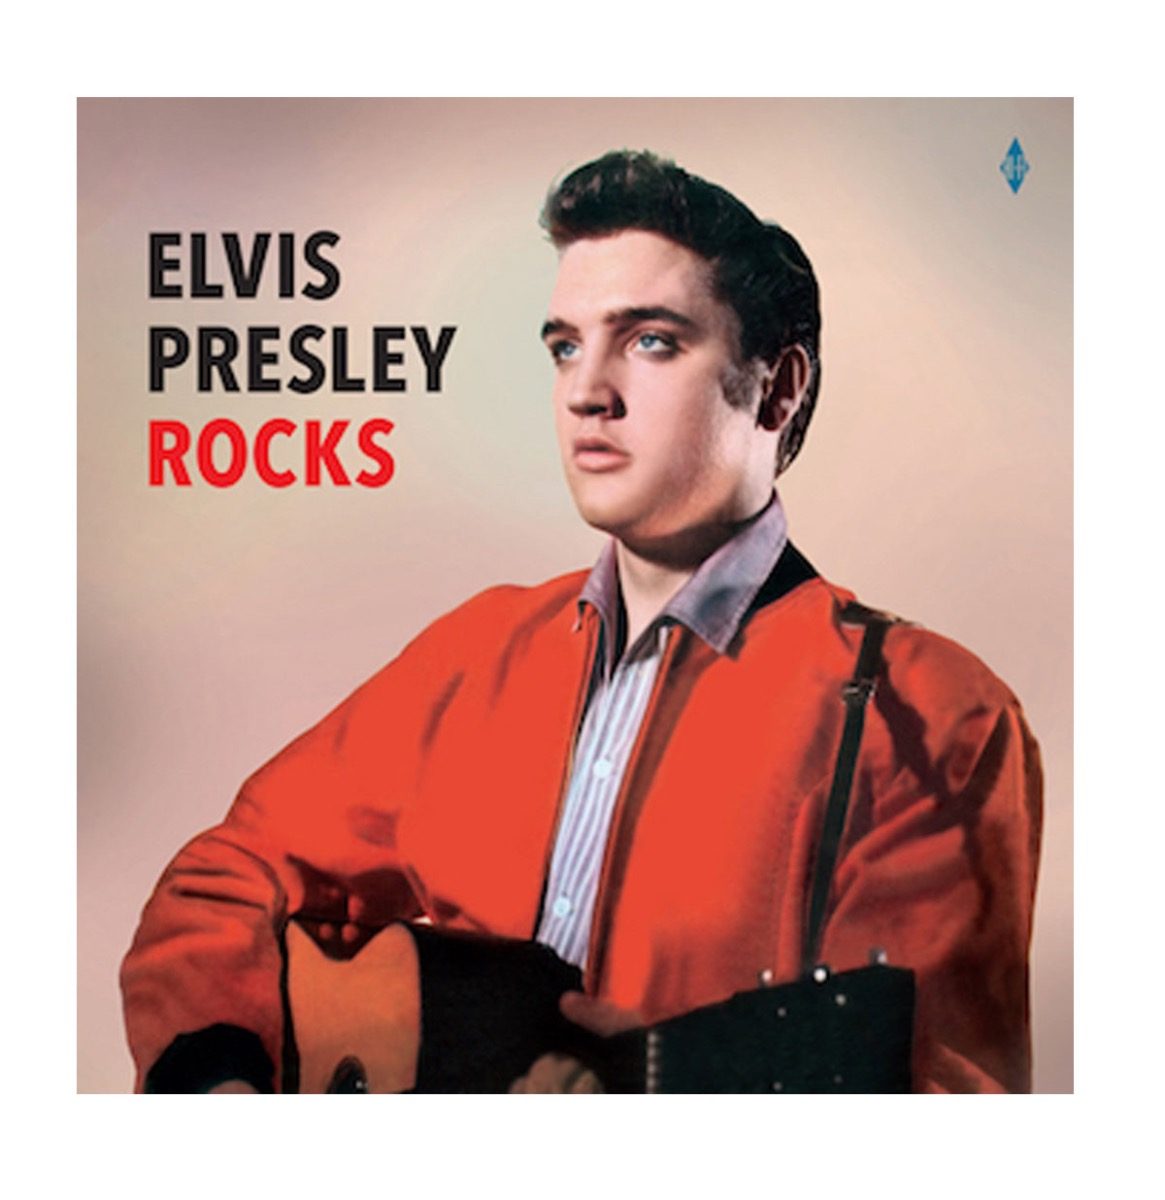 Elvis Presley - Elvis Presley Rocks LP + Bonus Tracks Limited